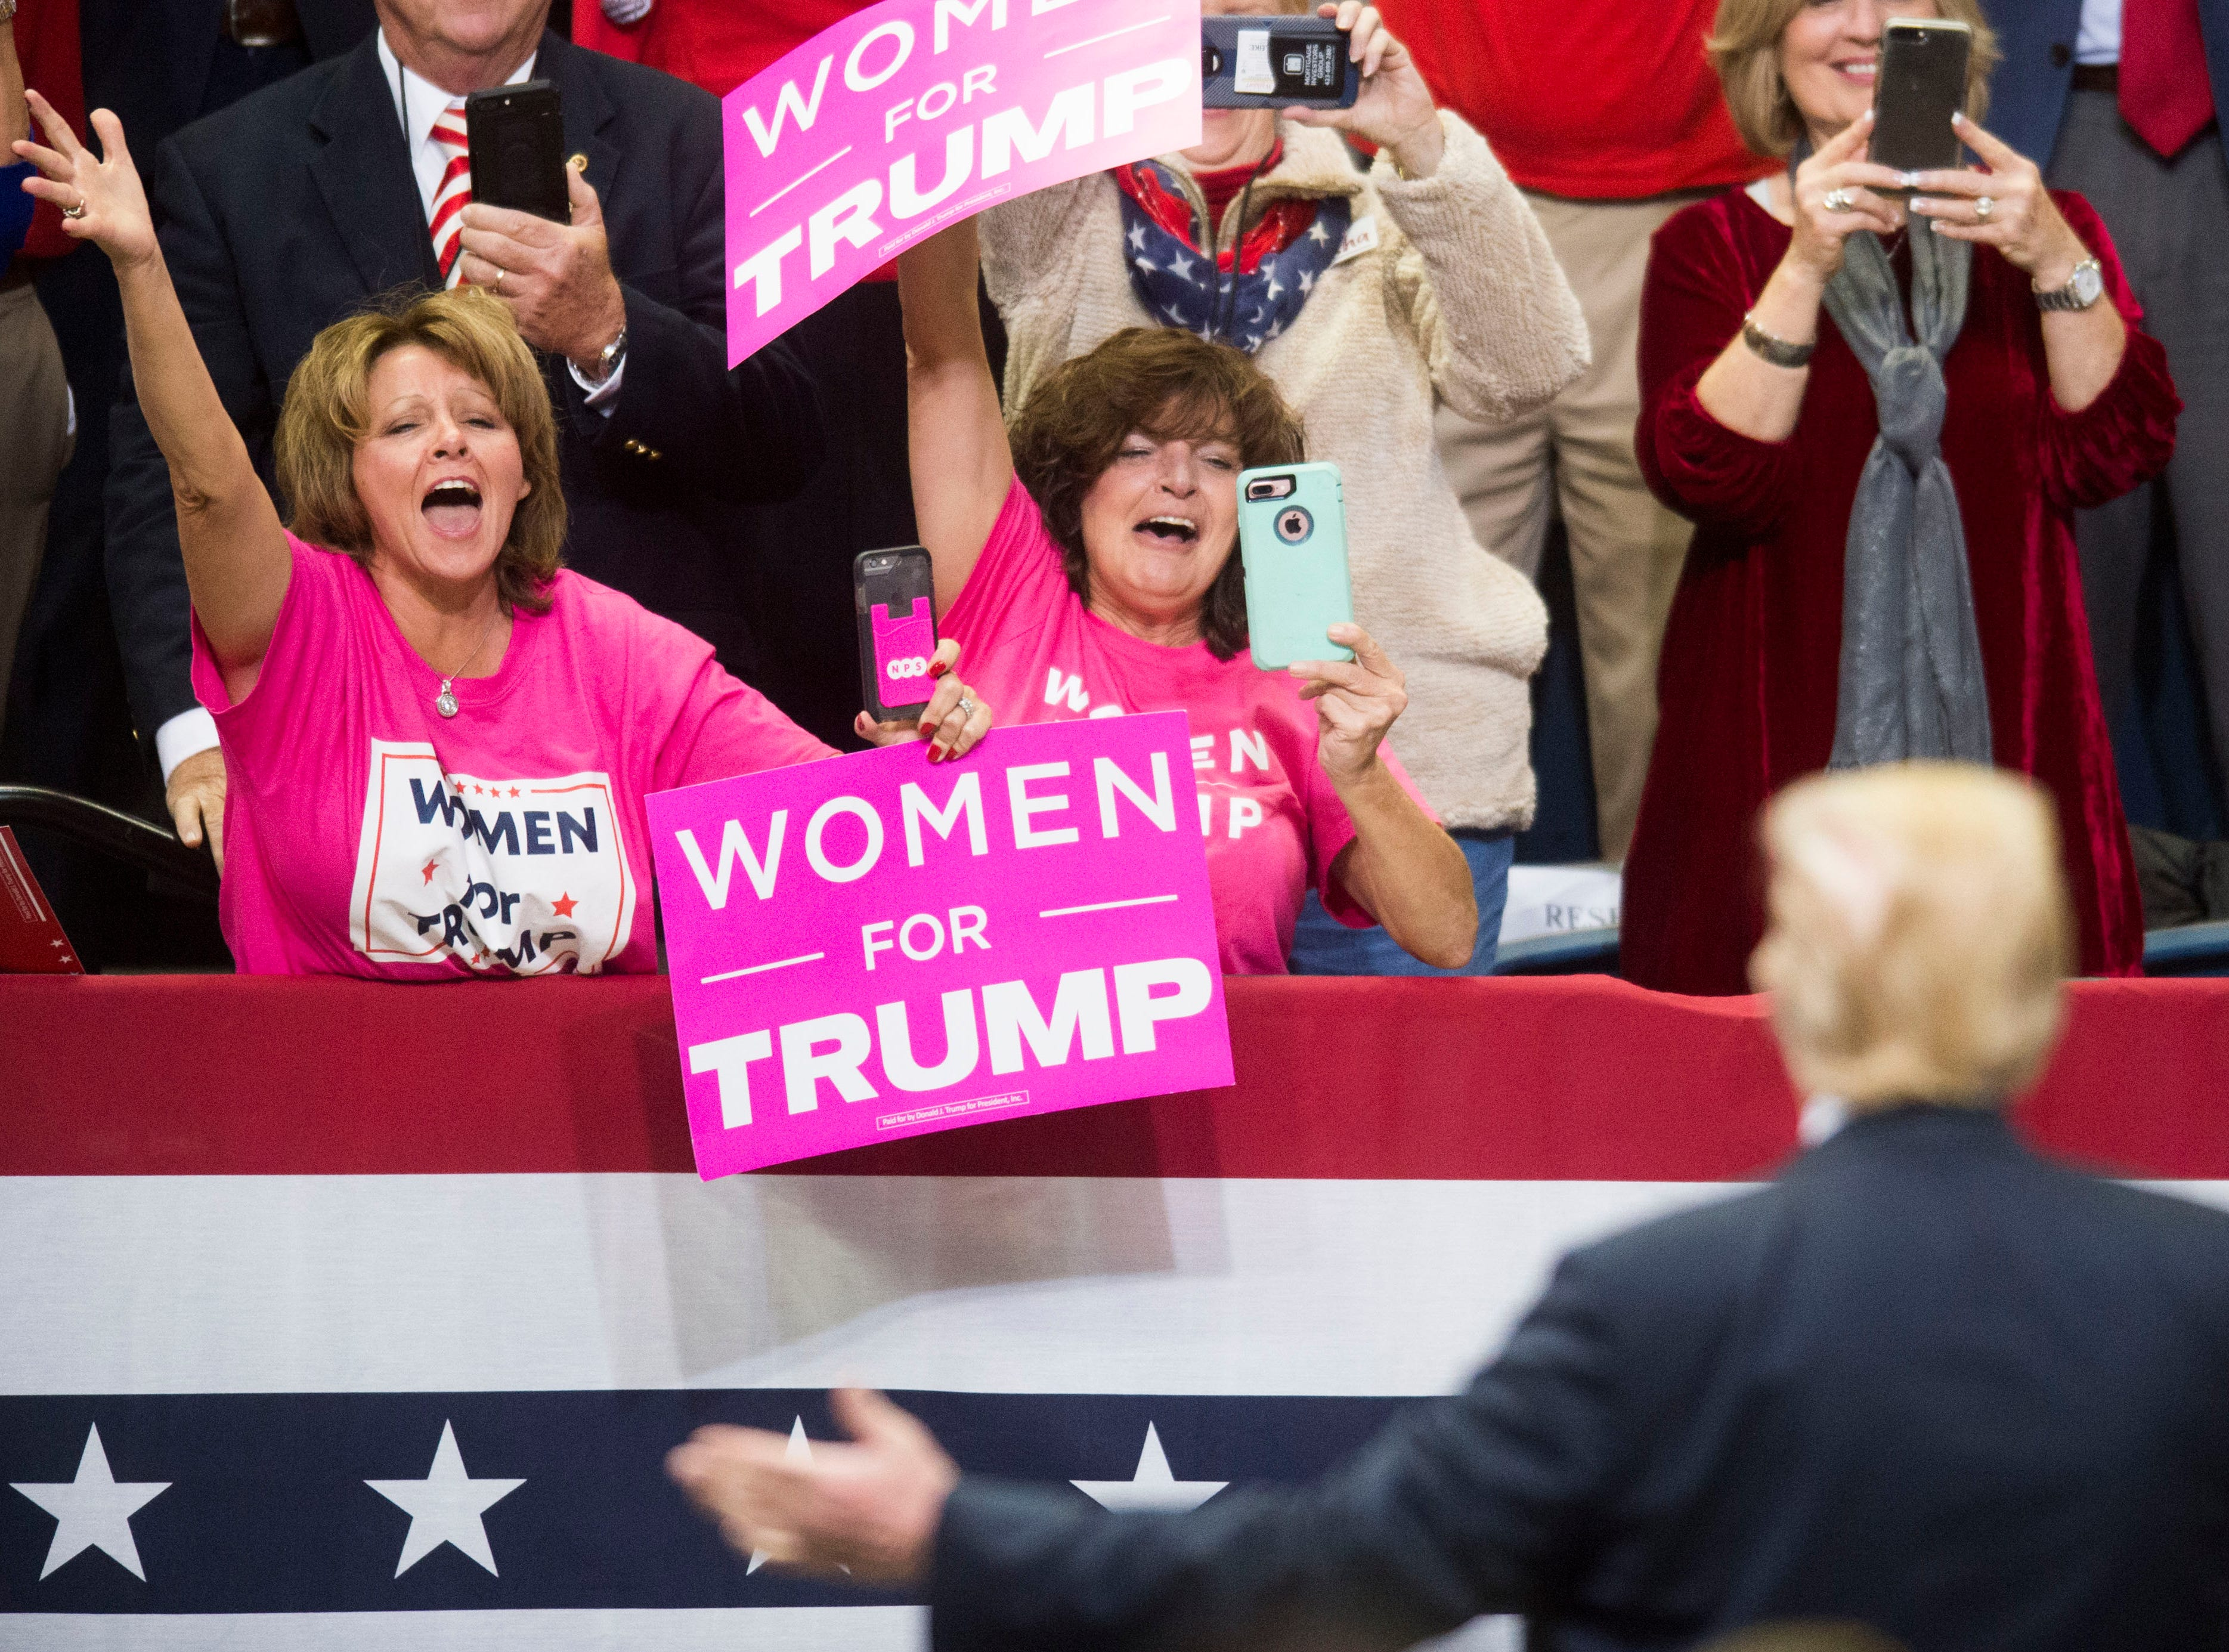 Trump supporters cheer for him during a Donald Trump rally in support of U.S. Rep. Marsha Blackburn for the U.S. Senate at McKenzie Arena in Chattanooga, Sunday, Nov. 4, 2018.